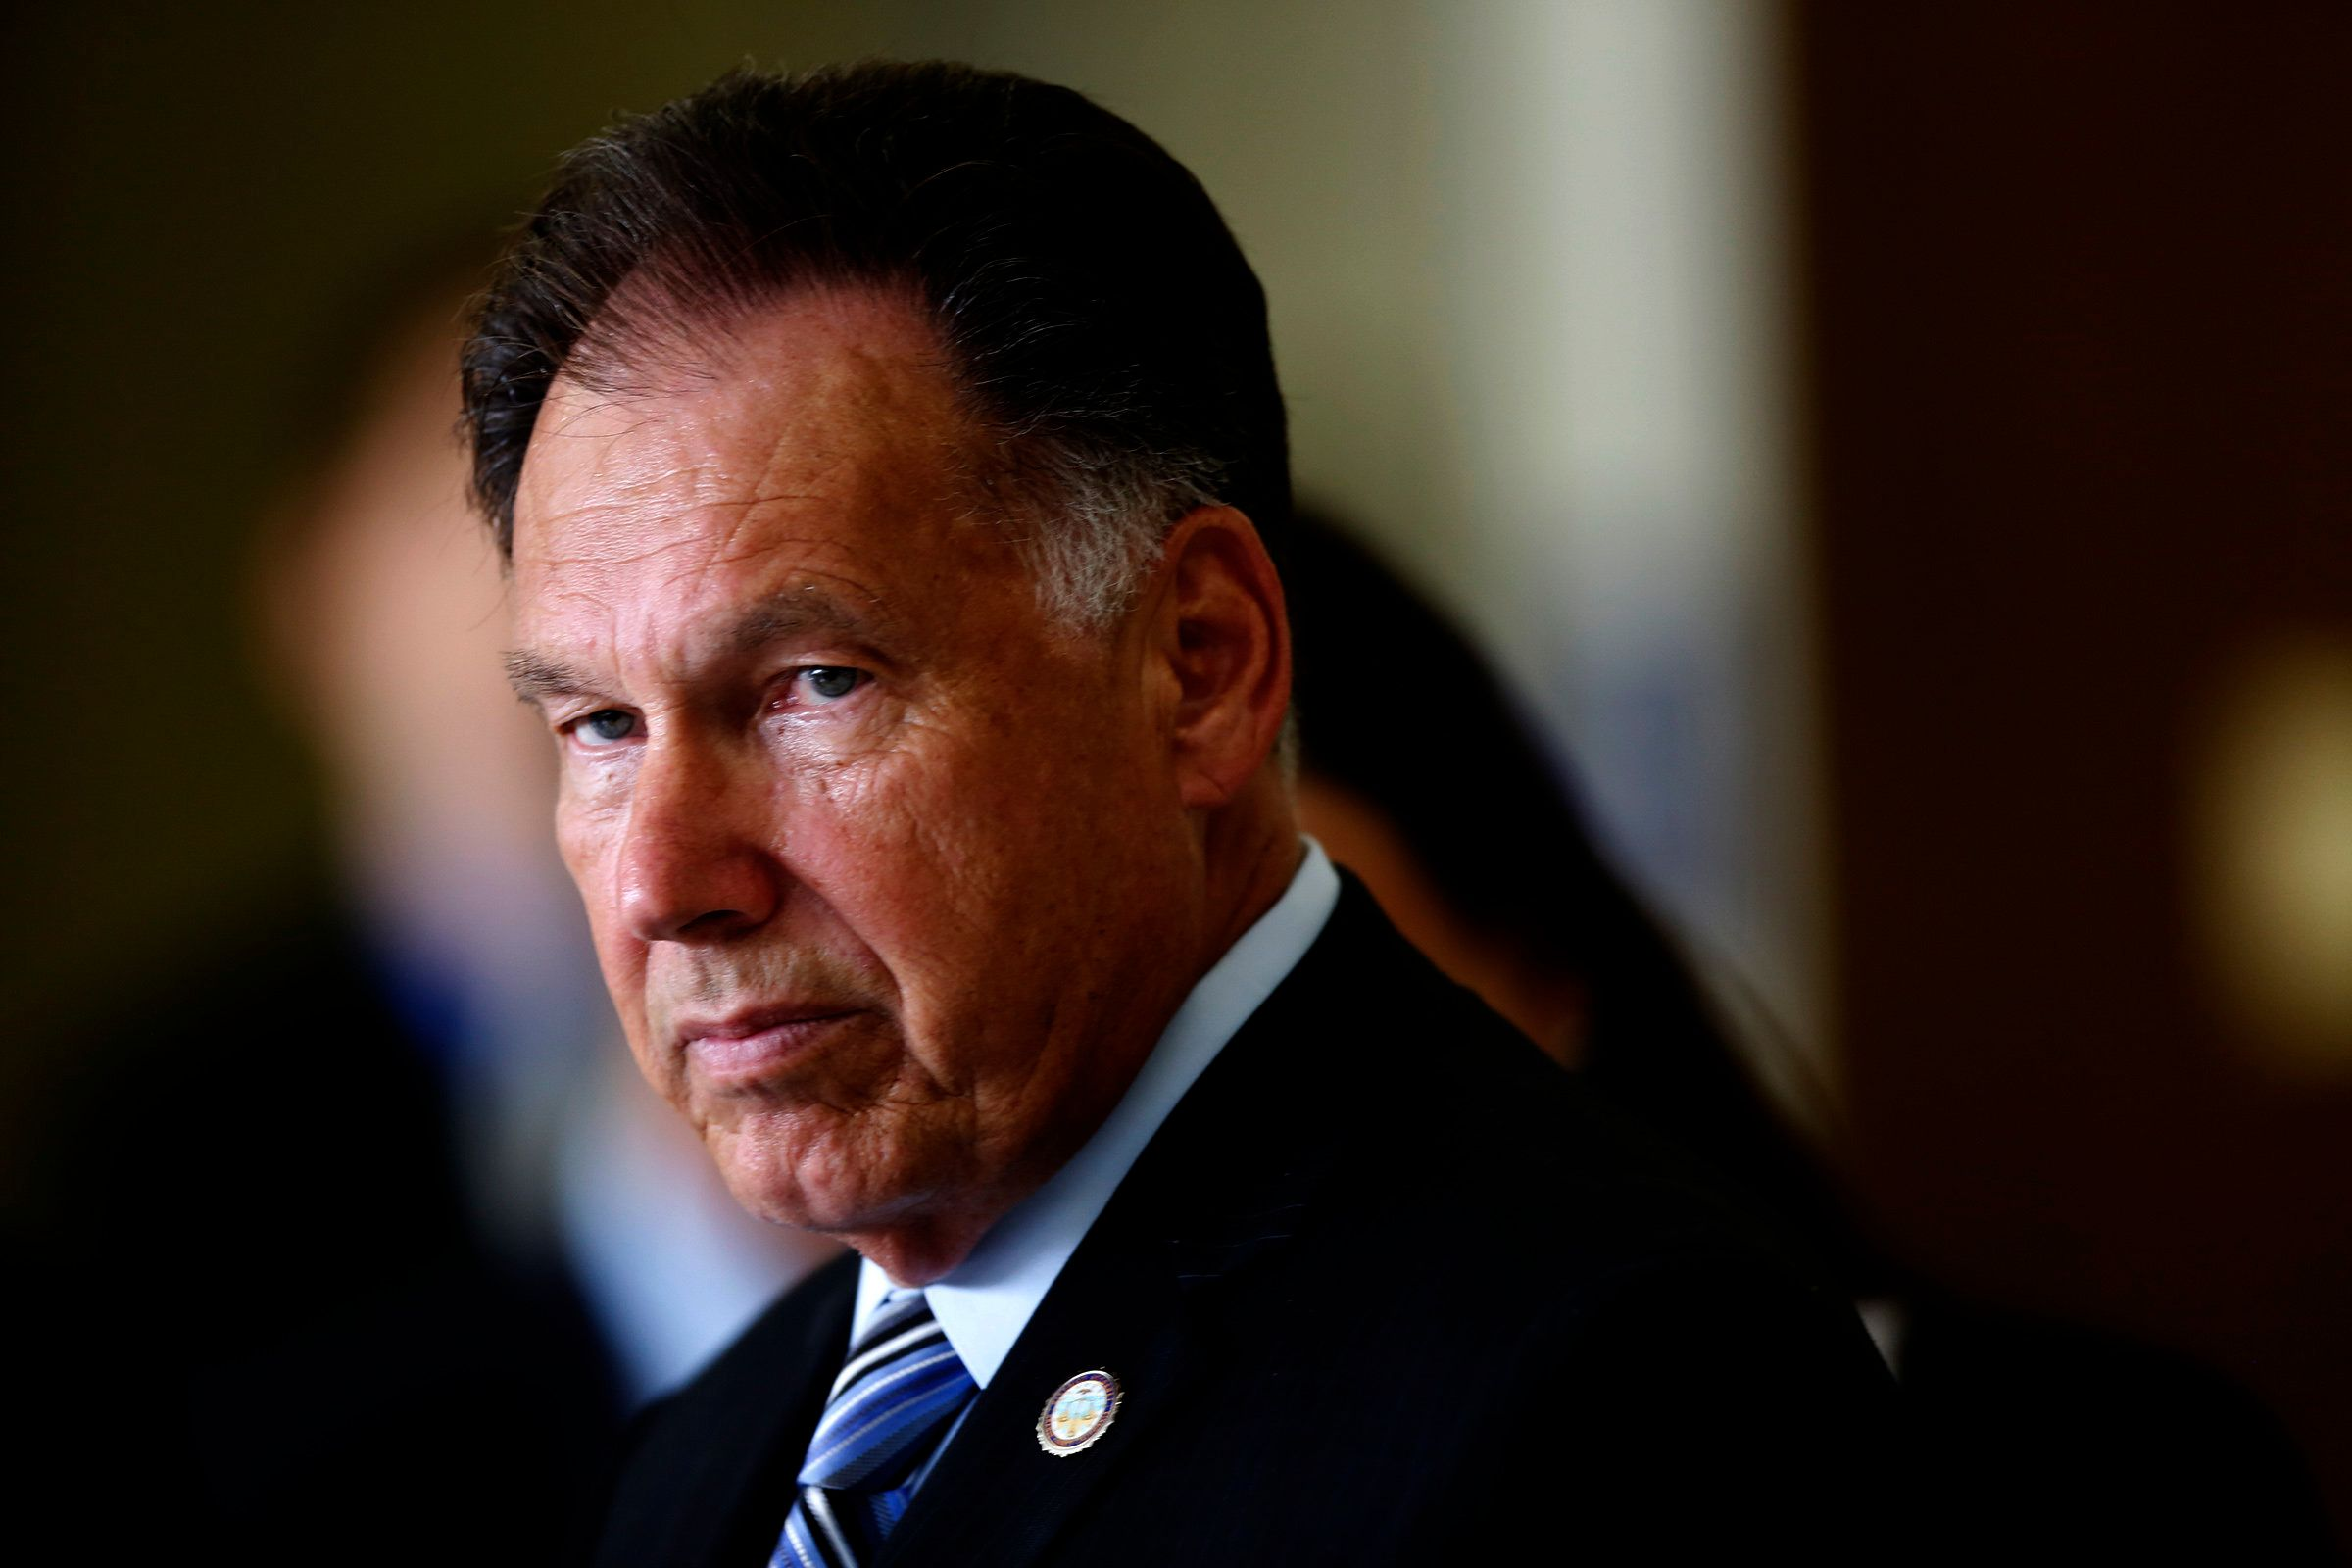 District Attorney Tony Rackauckas maintains that no one in his office intentionally behaved inappropriately in relation